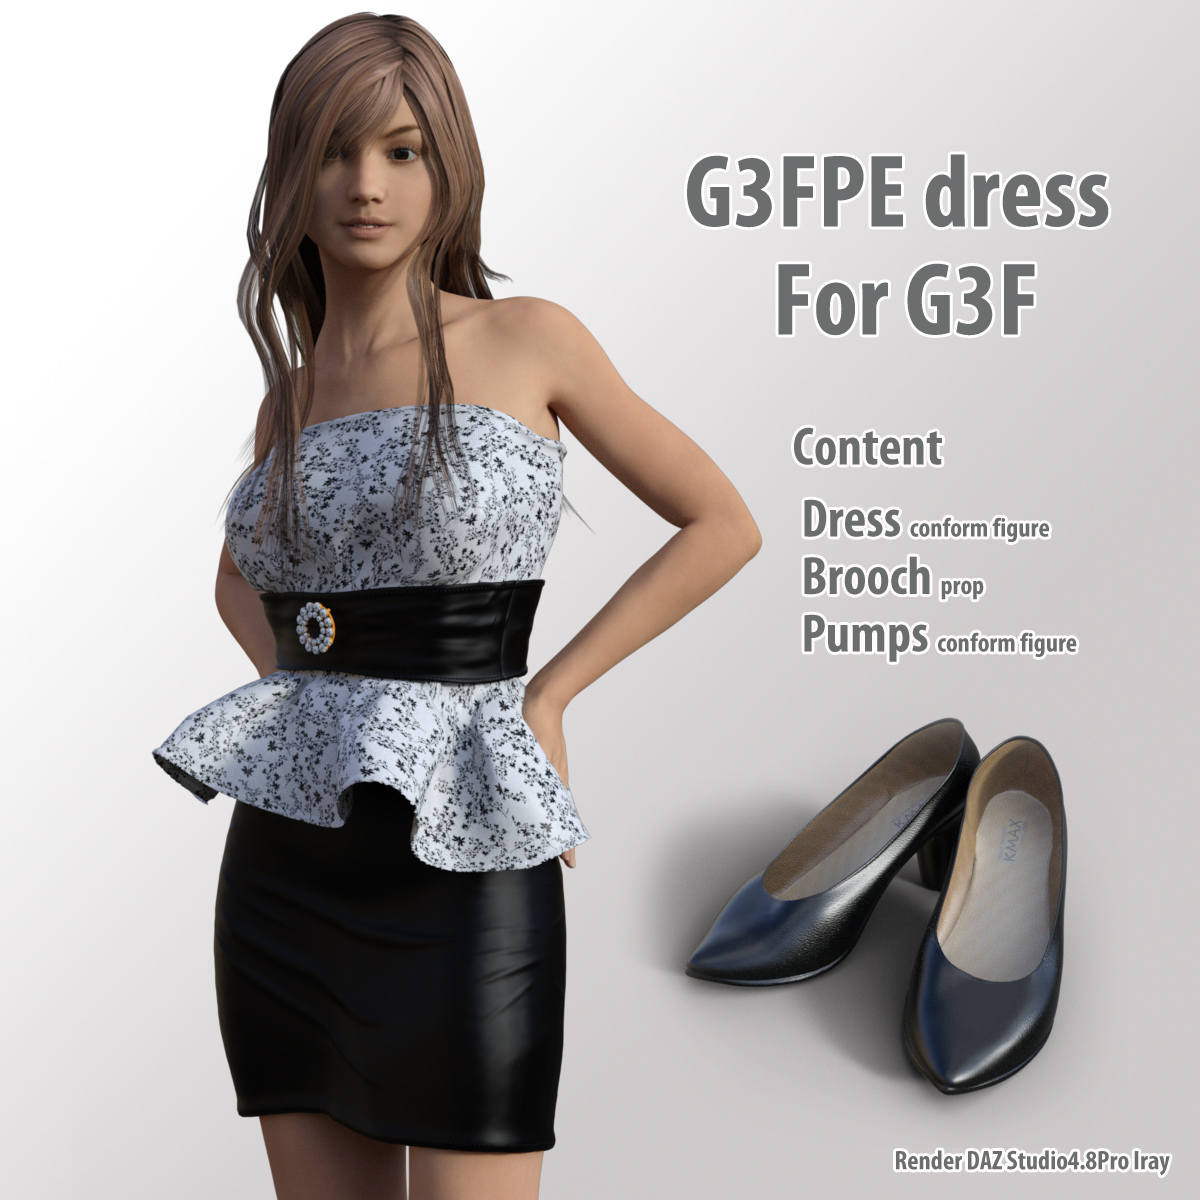 G3FPEdress for G3F